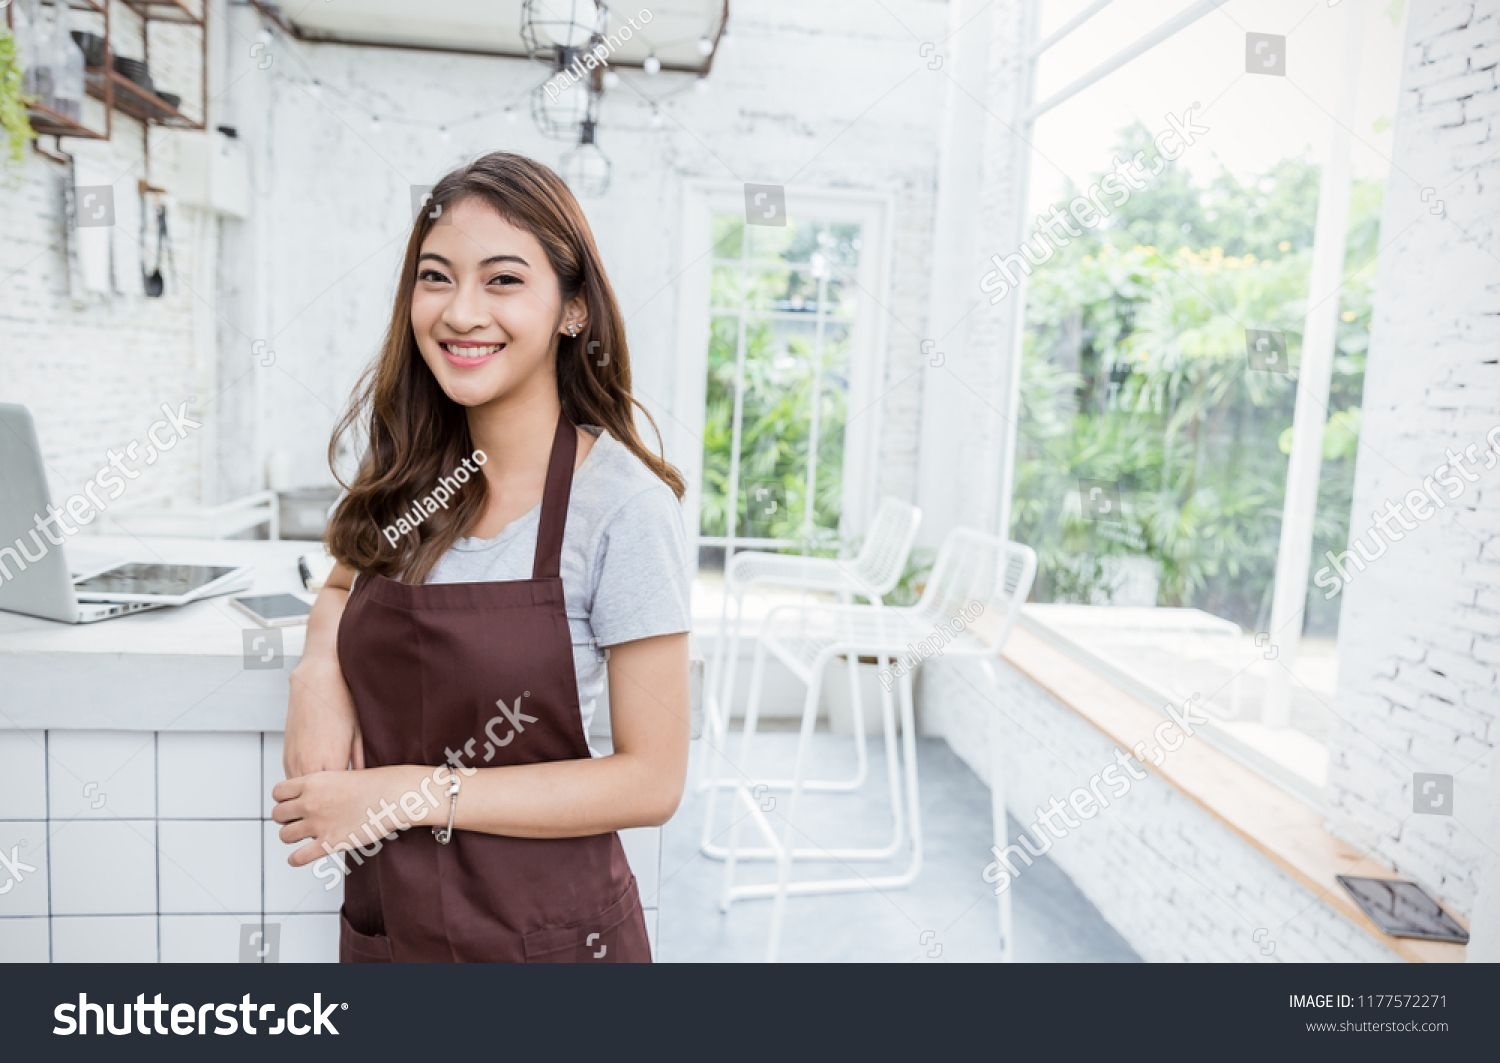 Startup Successful Small Business Owner Sme Beauty Girl Standing